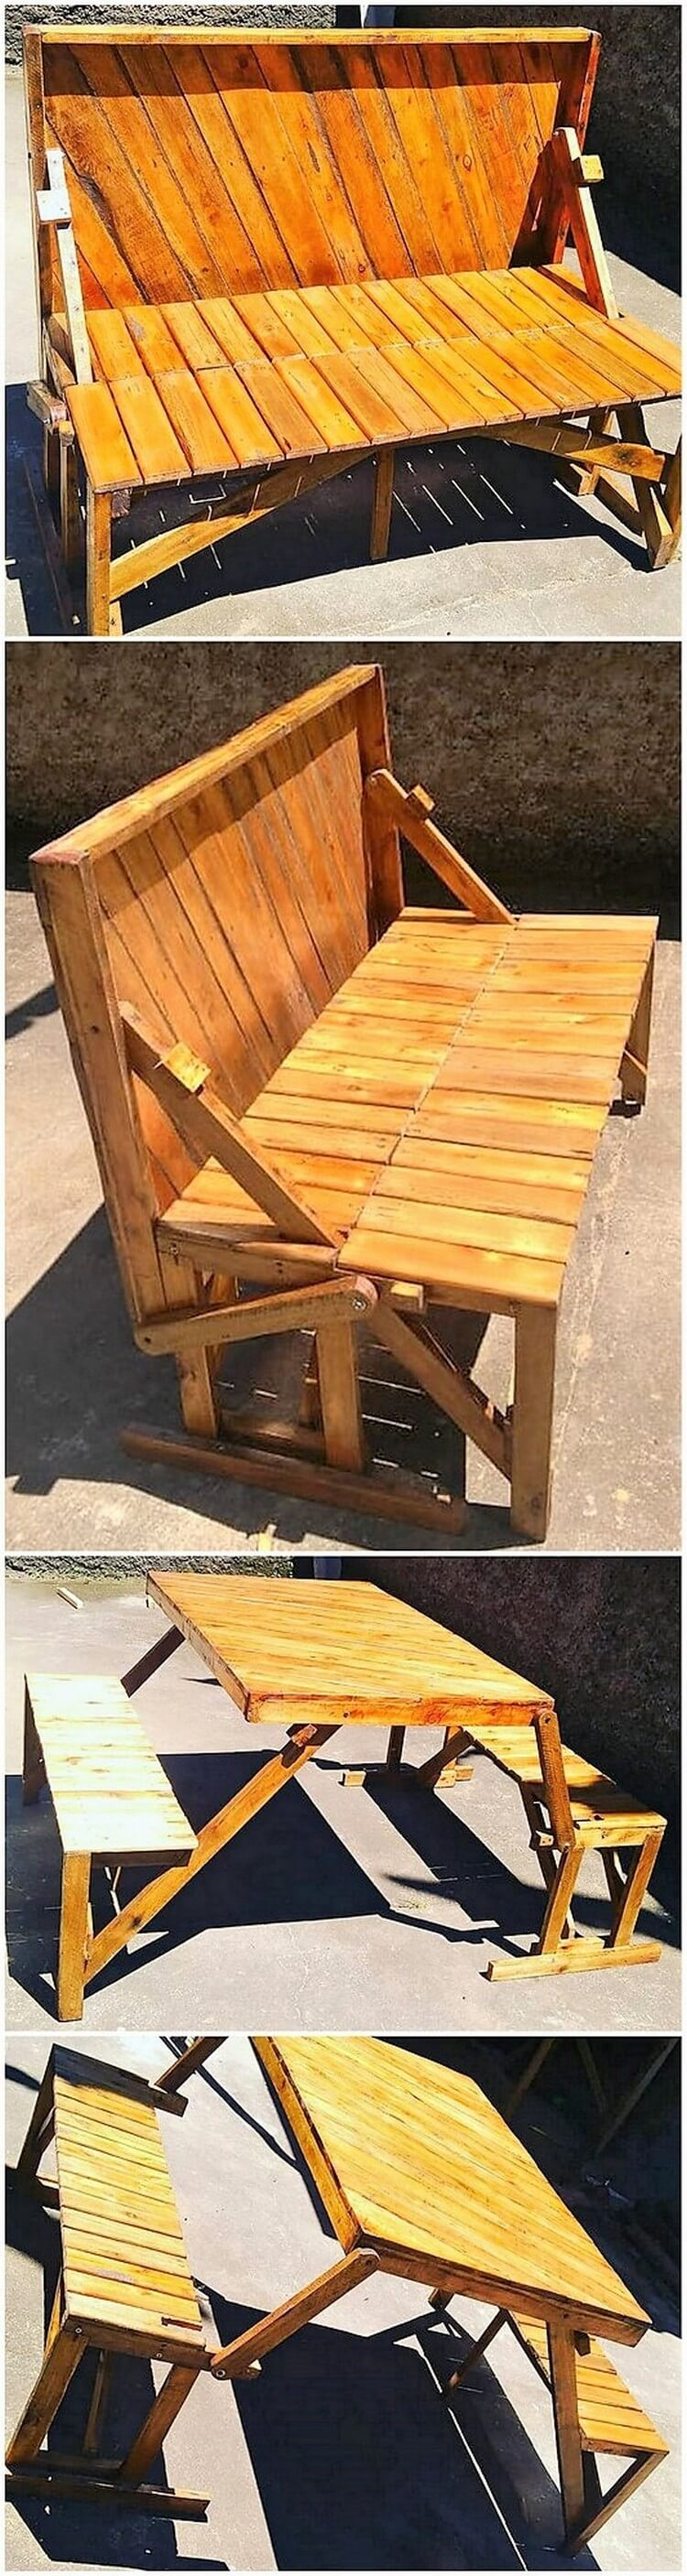 Pallet Benches with Table